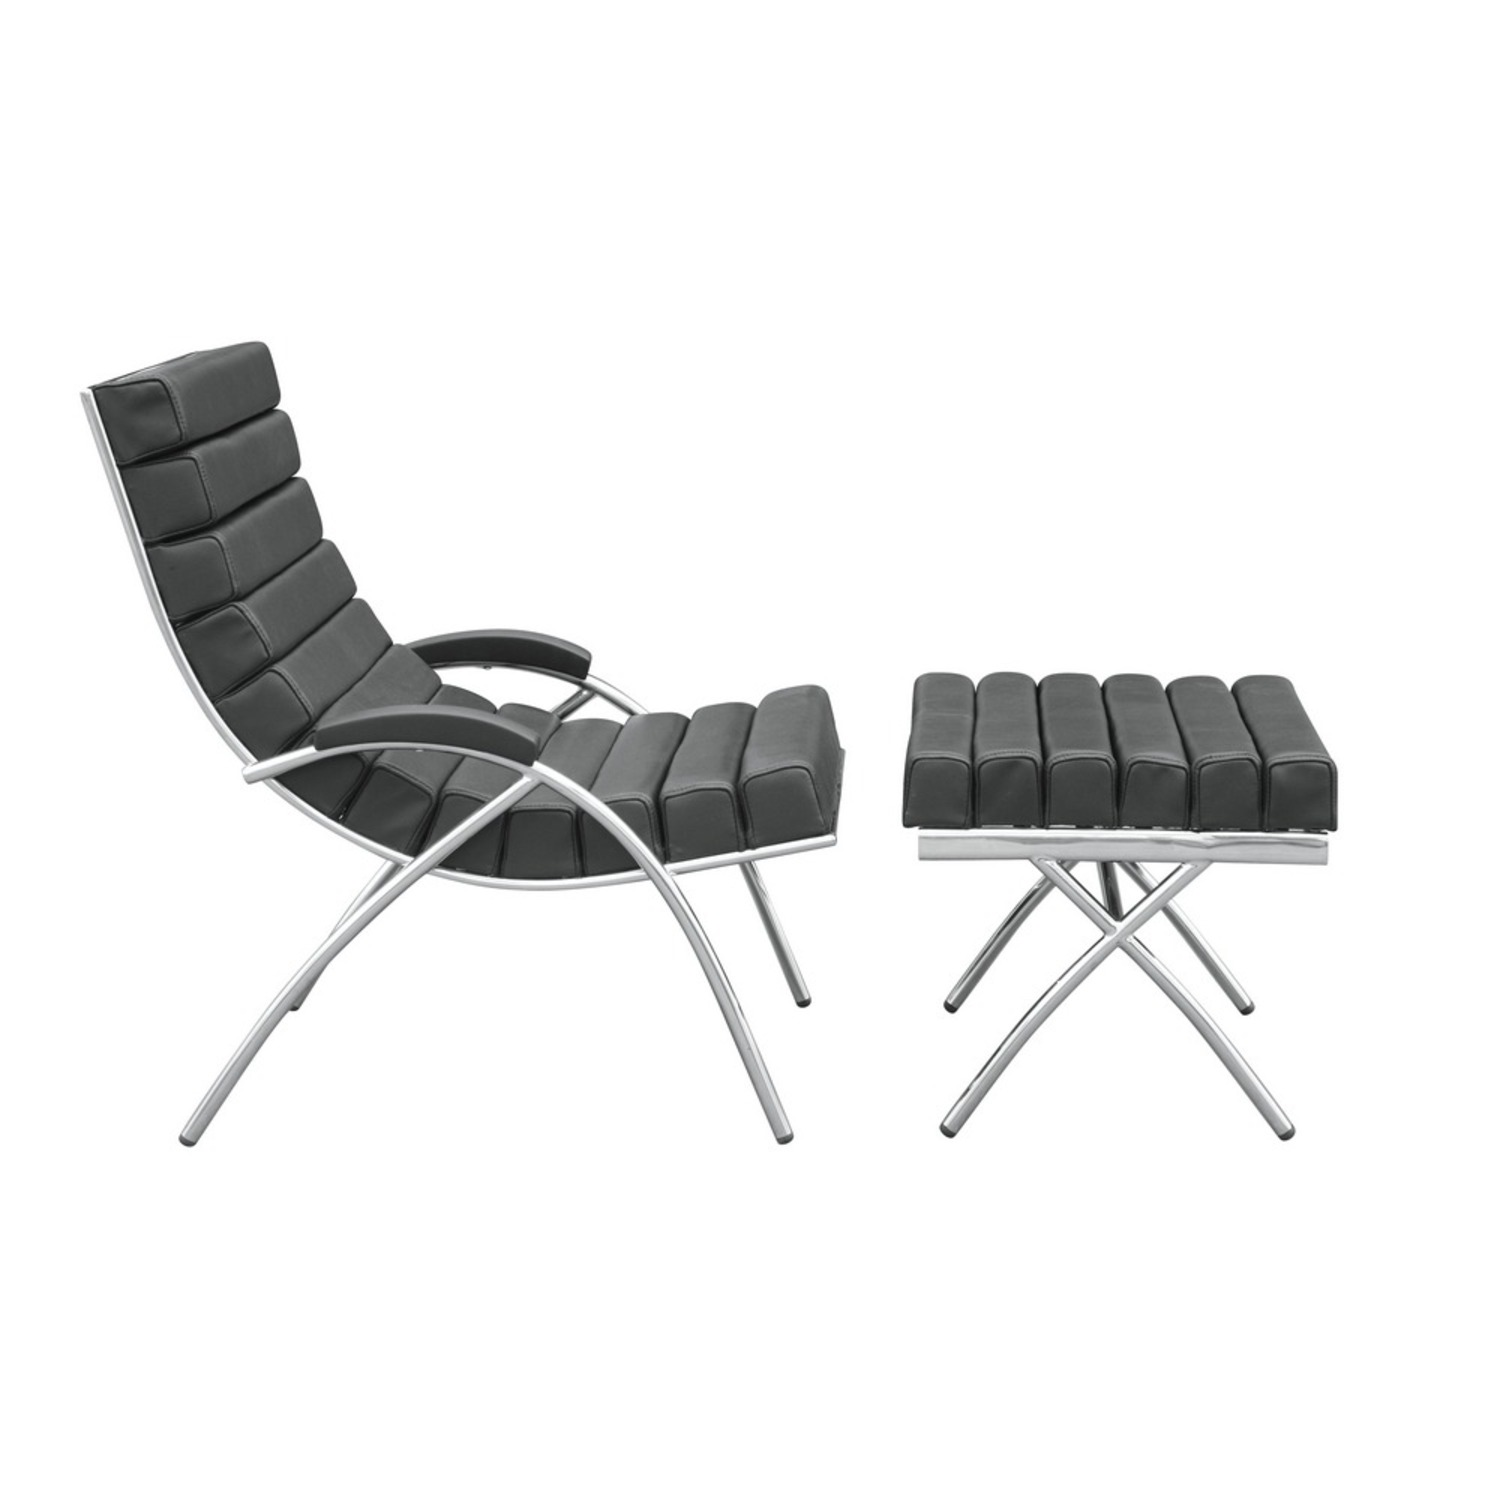 Chair & Ottoman In Black Leather & Stainless Steel - image-1